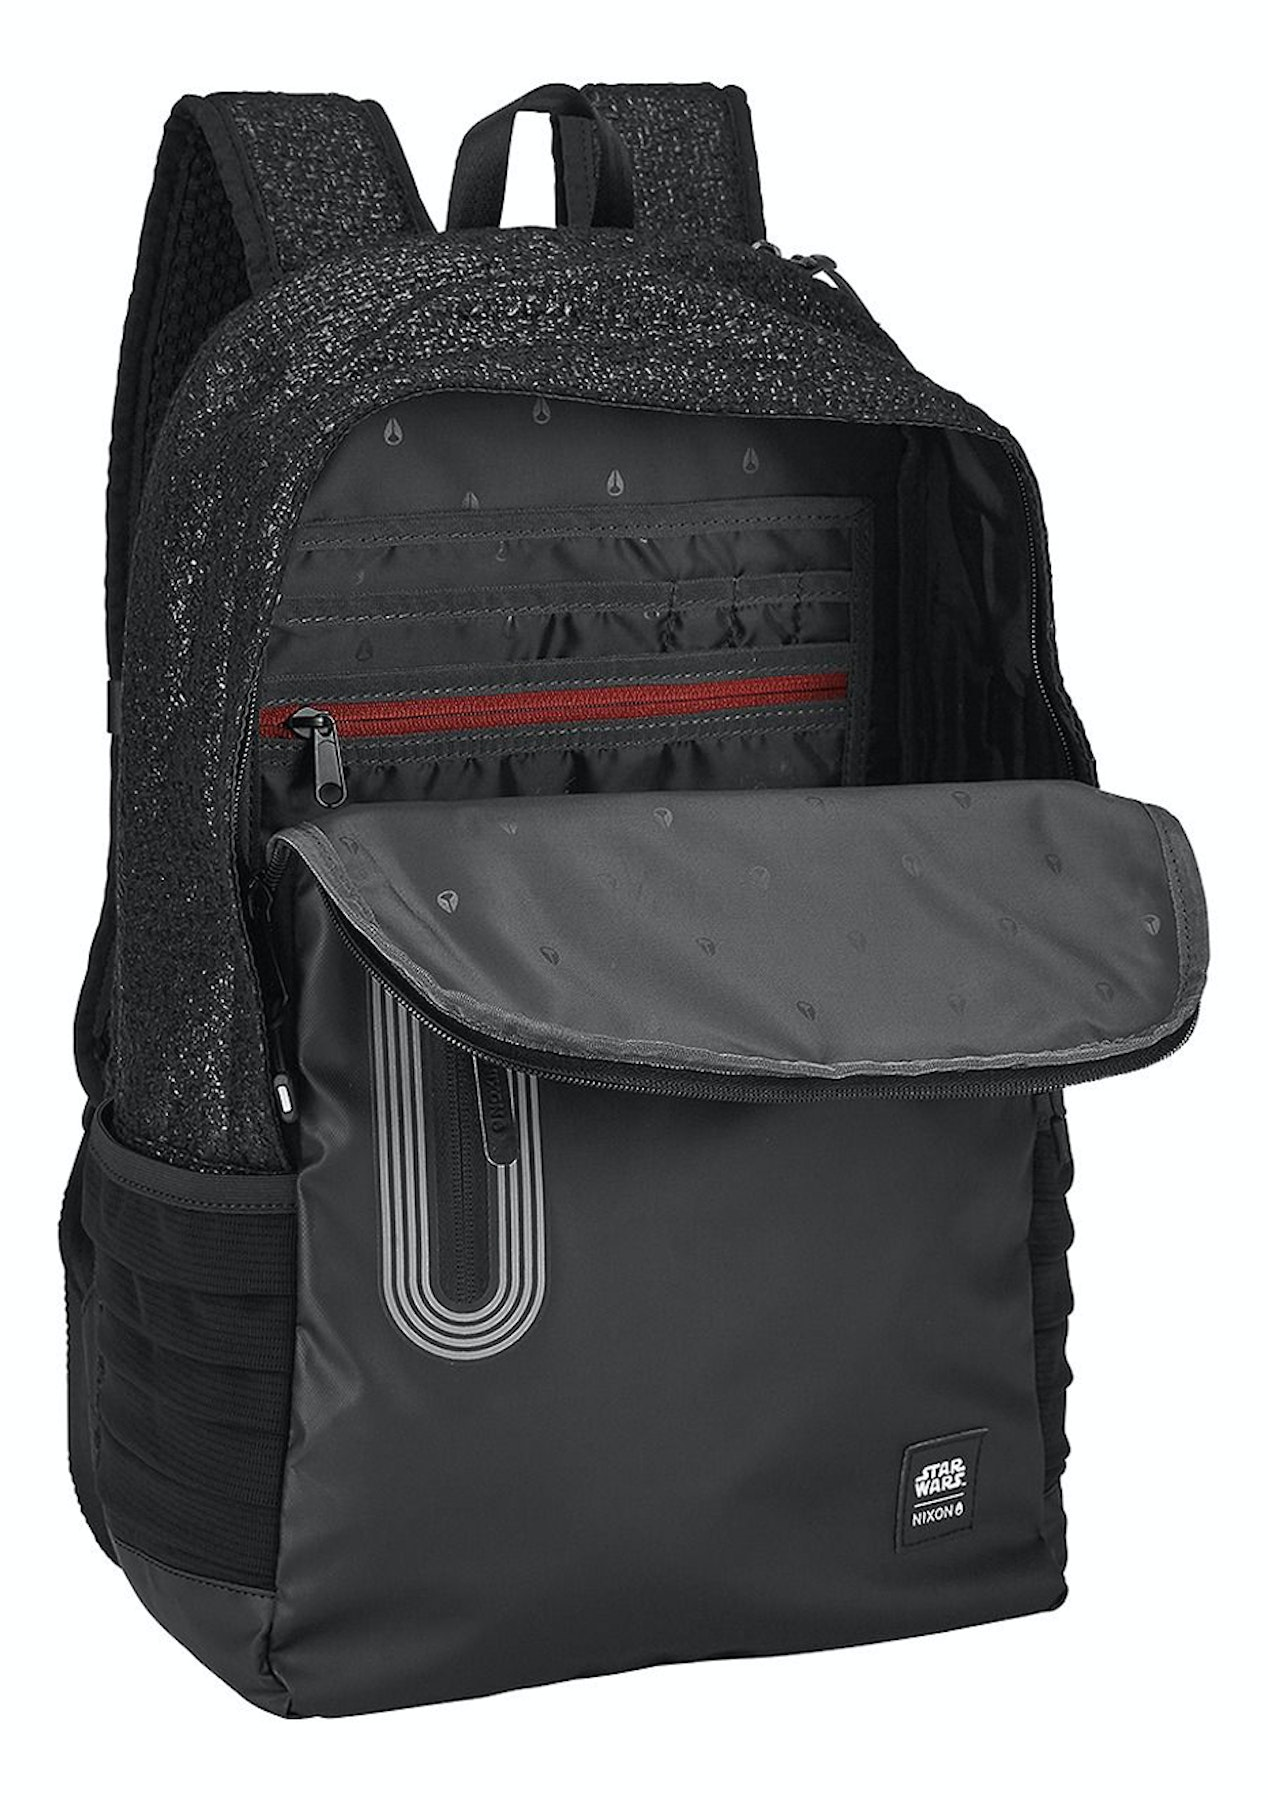 Nixon Smith Backpack SW - Big Brand Watch Price Drop